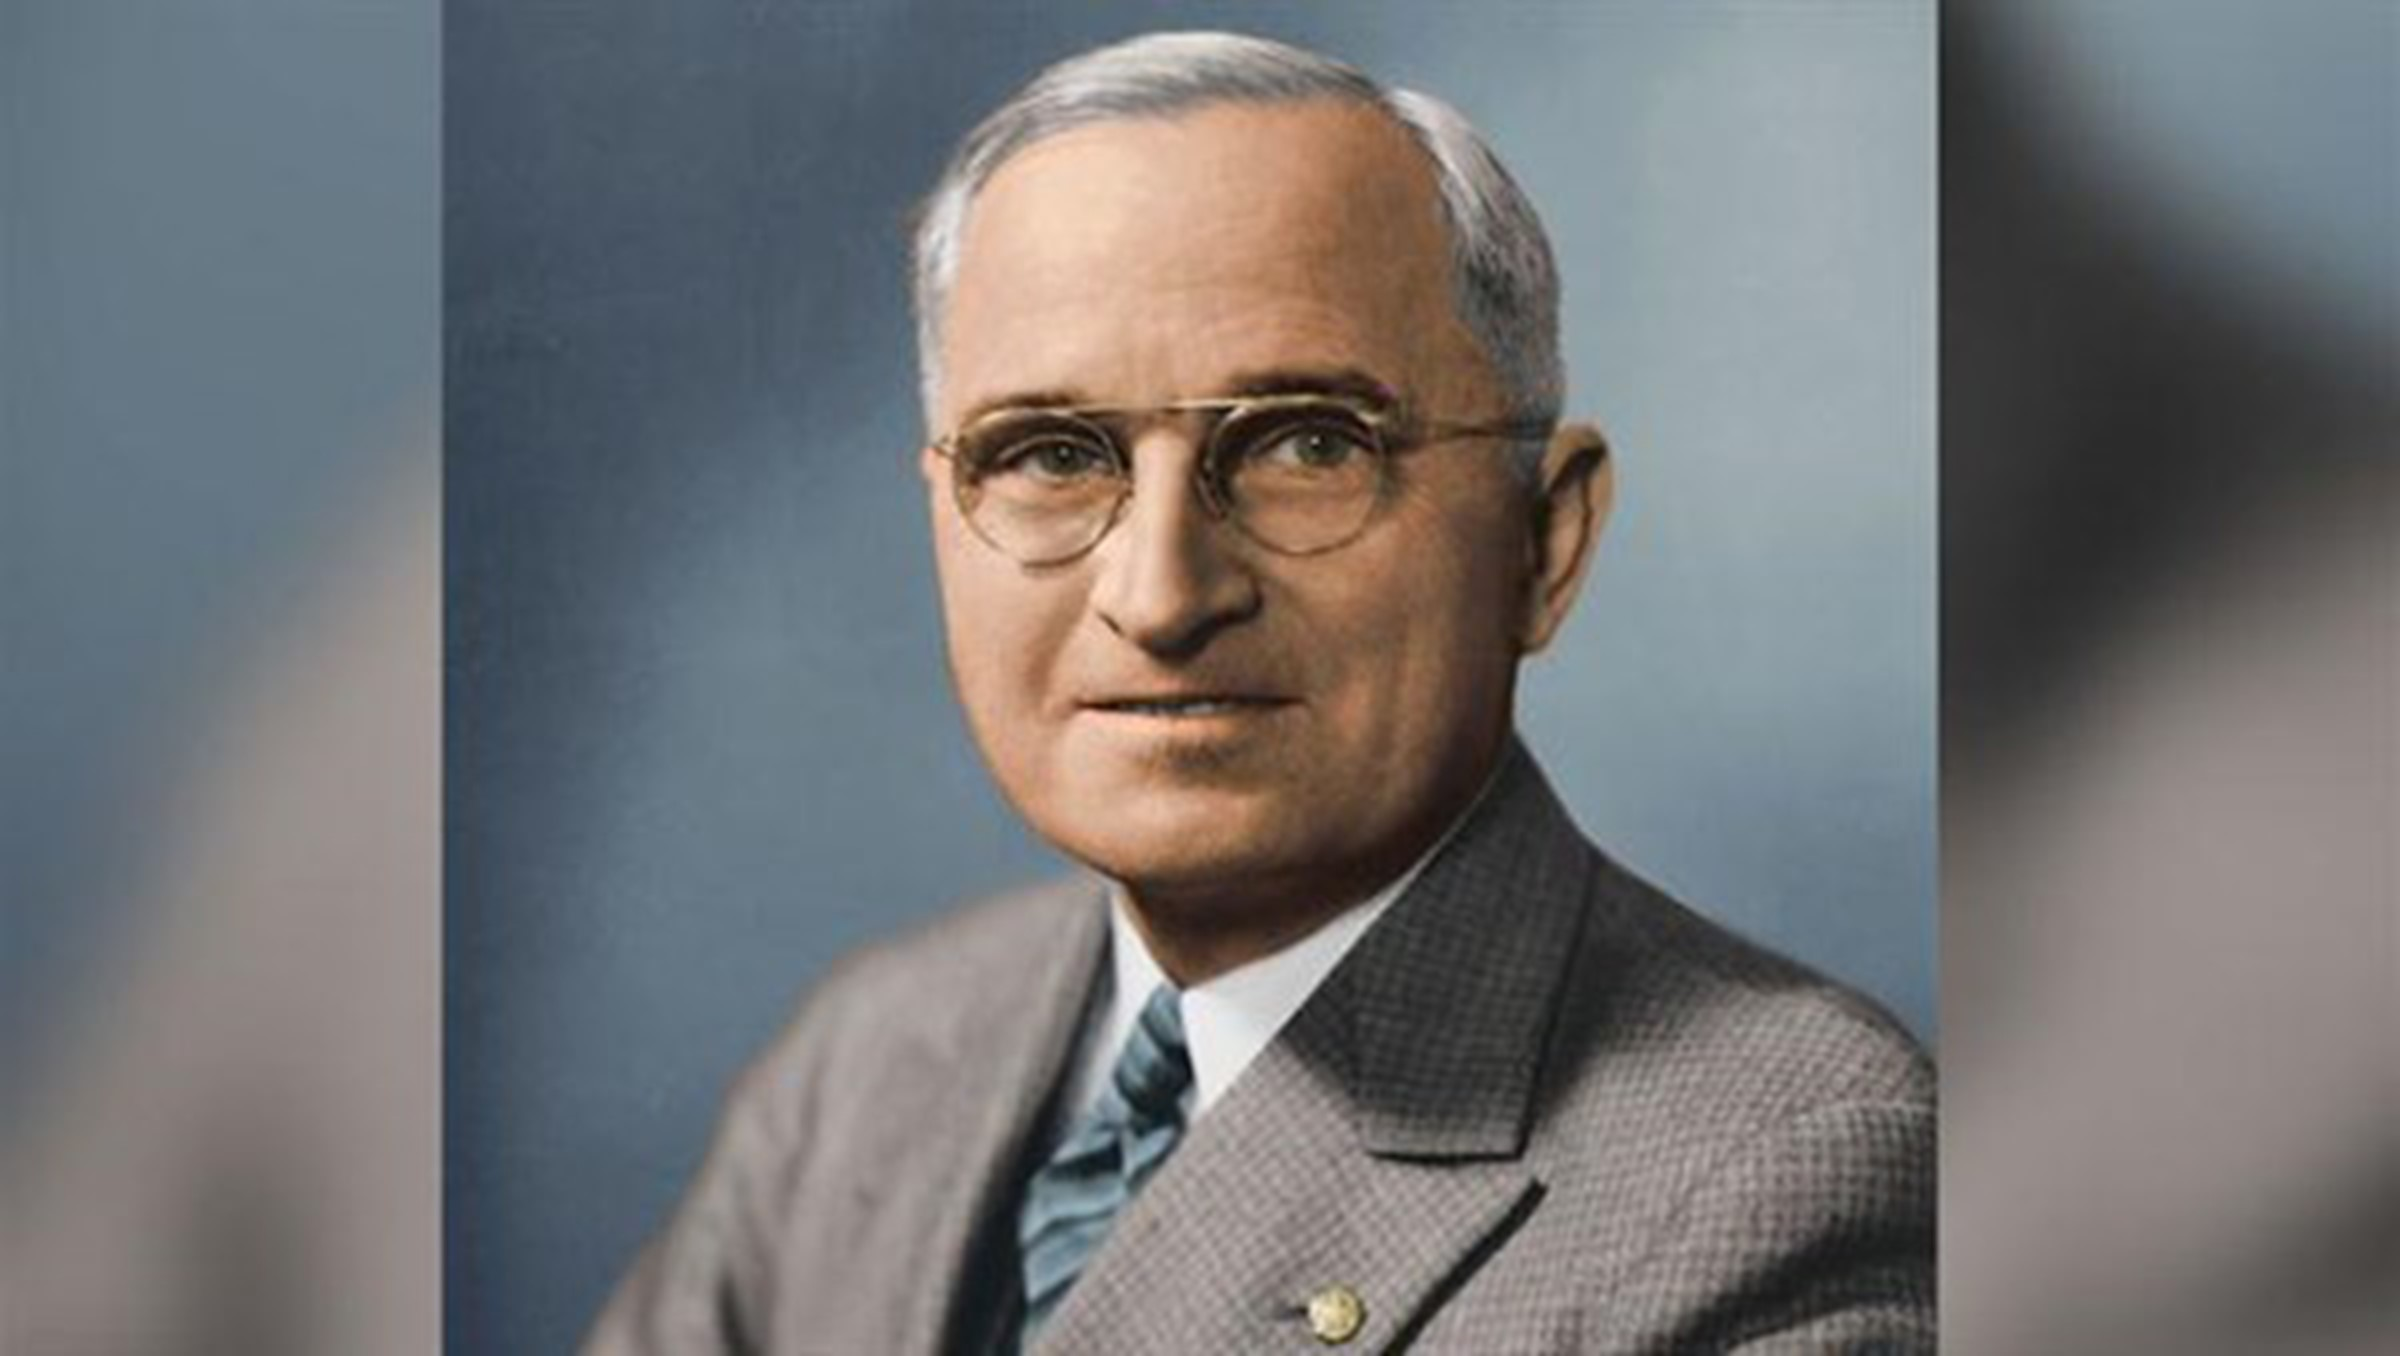 July 26th, 2021. This day of my life. My CIA connection is made possible by President Harry Truman's war against Communism.